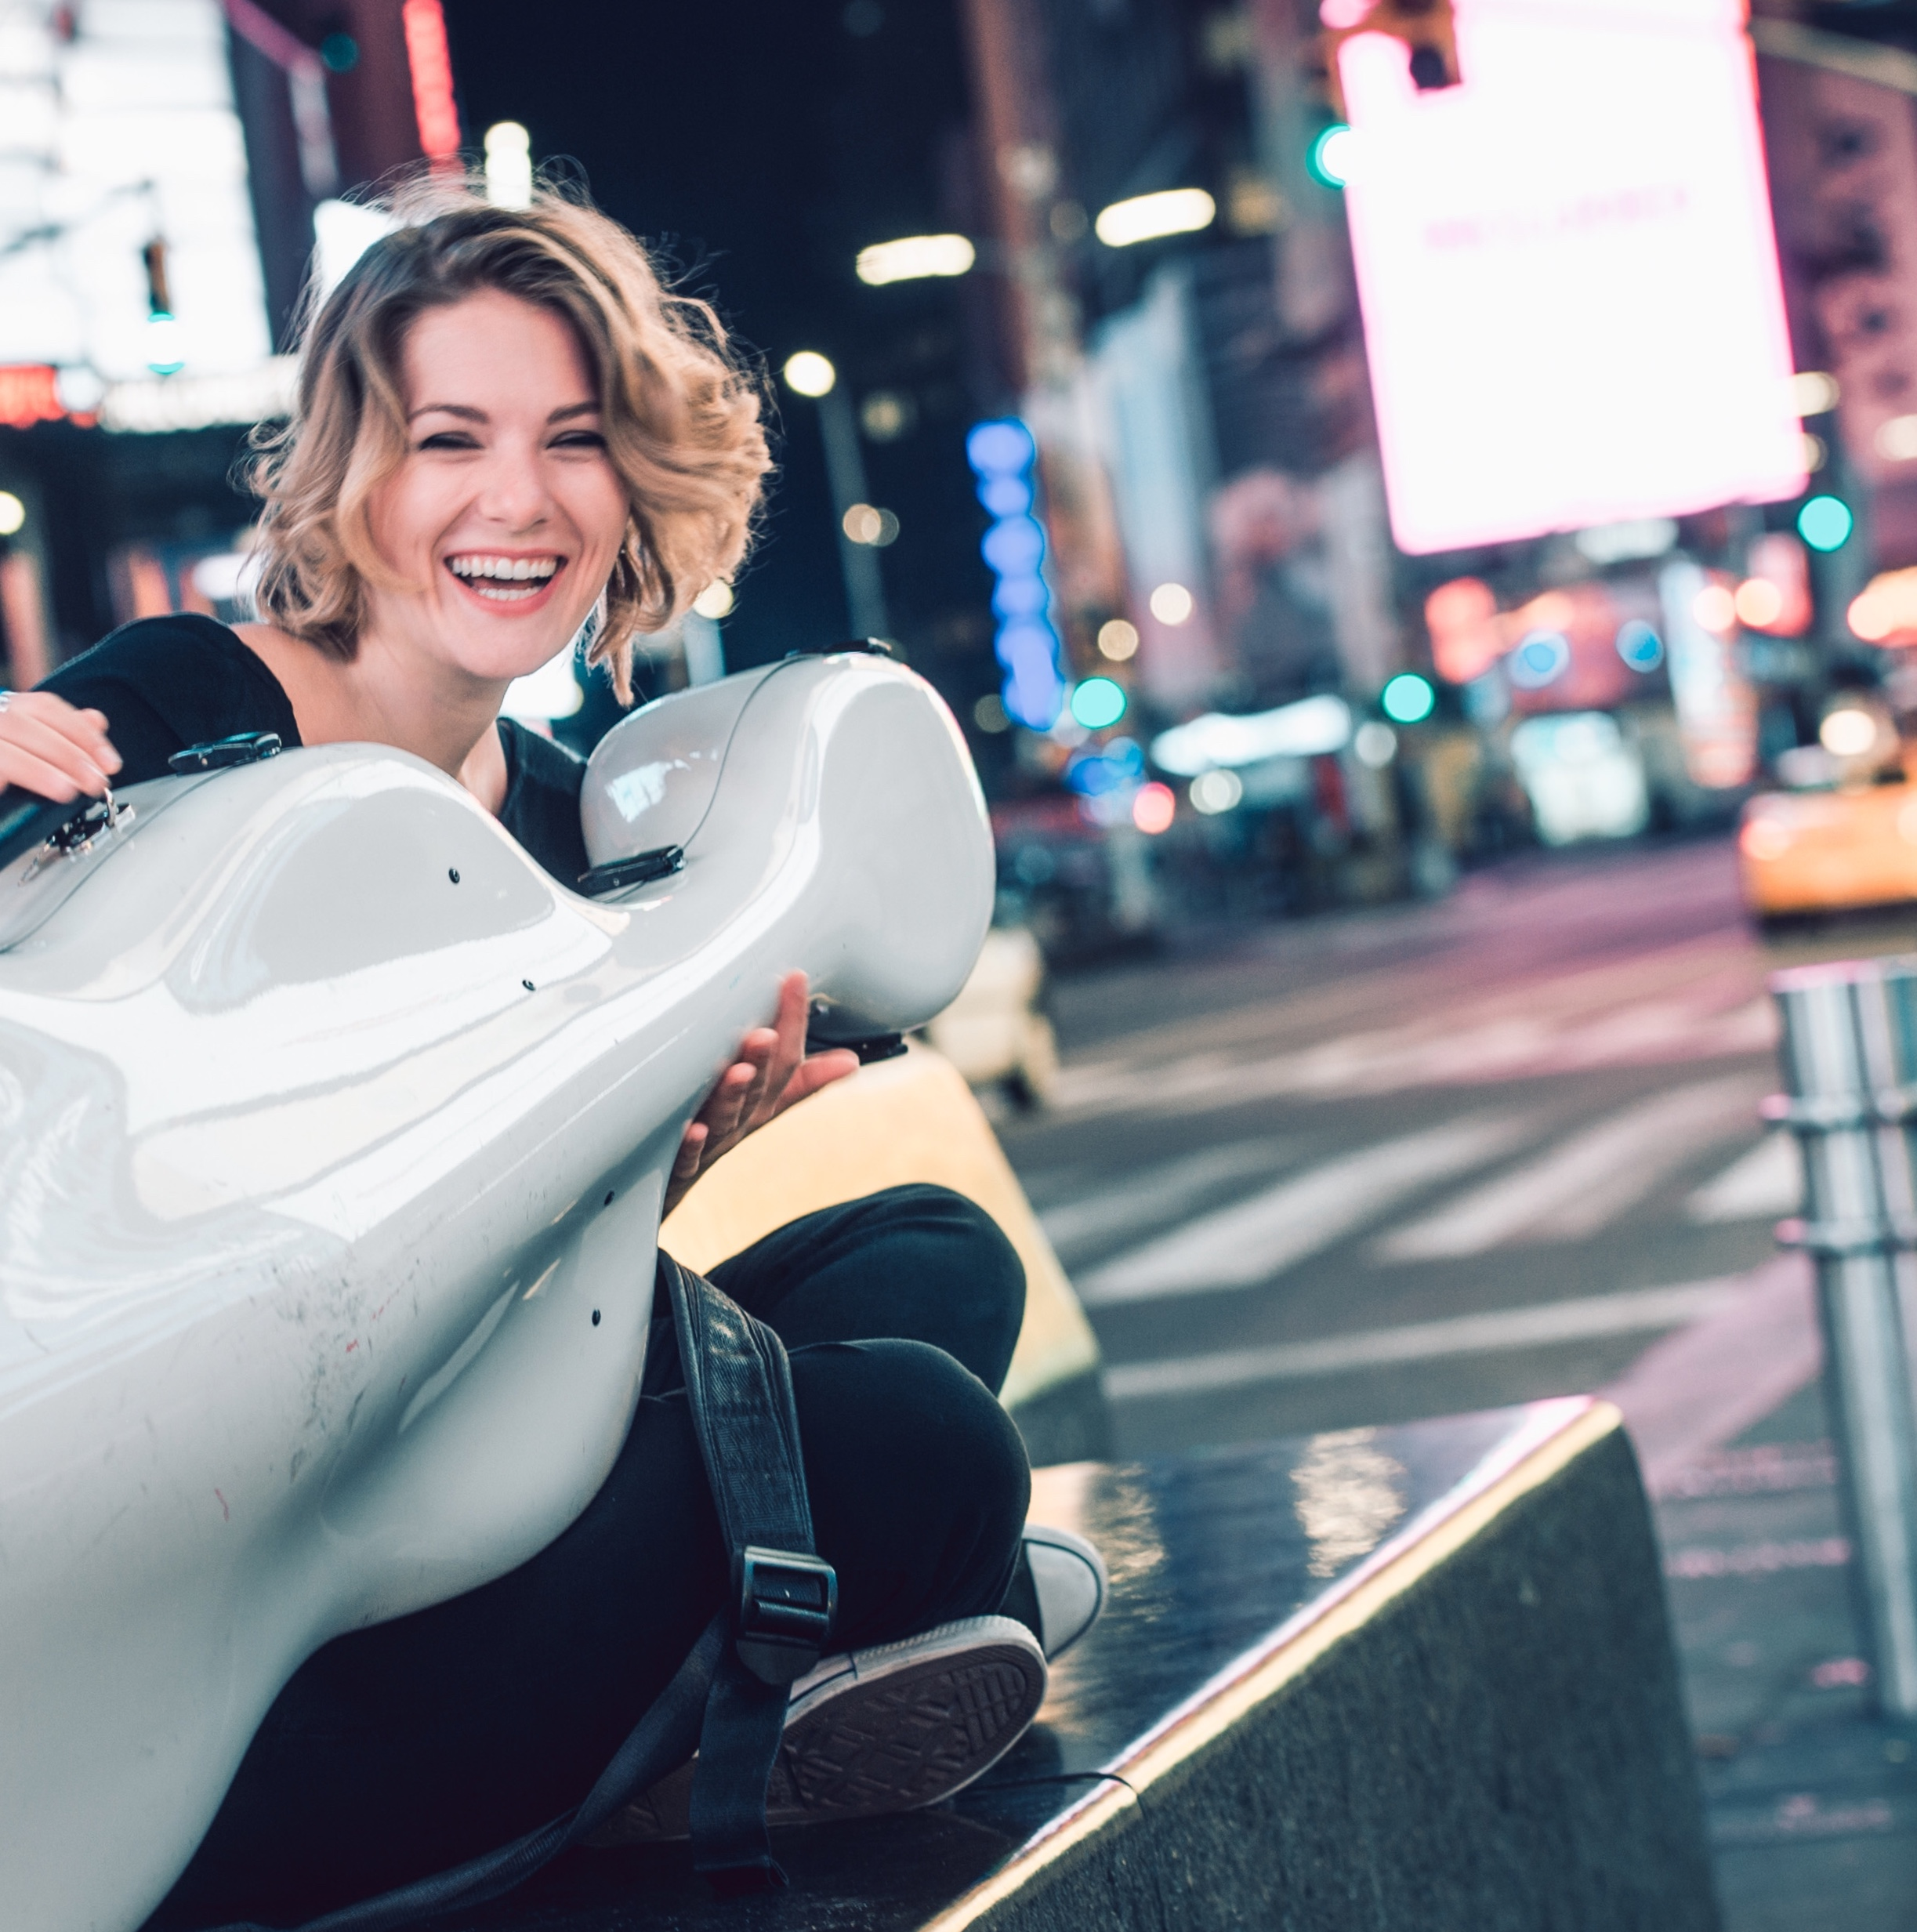 THIRD STREAM Concert on SUGAR HILL with Cecile Gruebler, violoncello and Daniel Schnyder, saxophone, Sunday JULY 28th 5pm - 6pm @ L'ARGOT, your cultural restaurant at 142 Hamilton place Harlem Manhattan. Please join us! The concert will take place in our beautiful NEW patio in the back of the restaurant! Check it out.